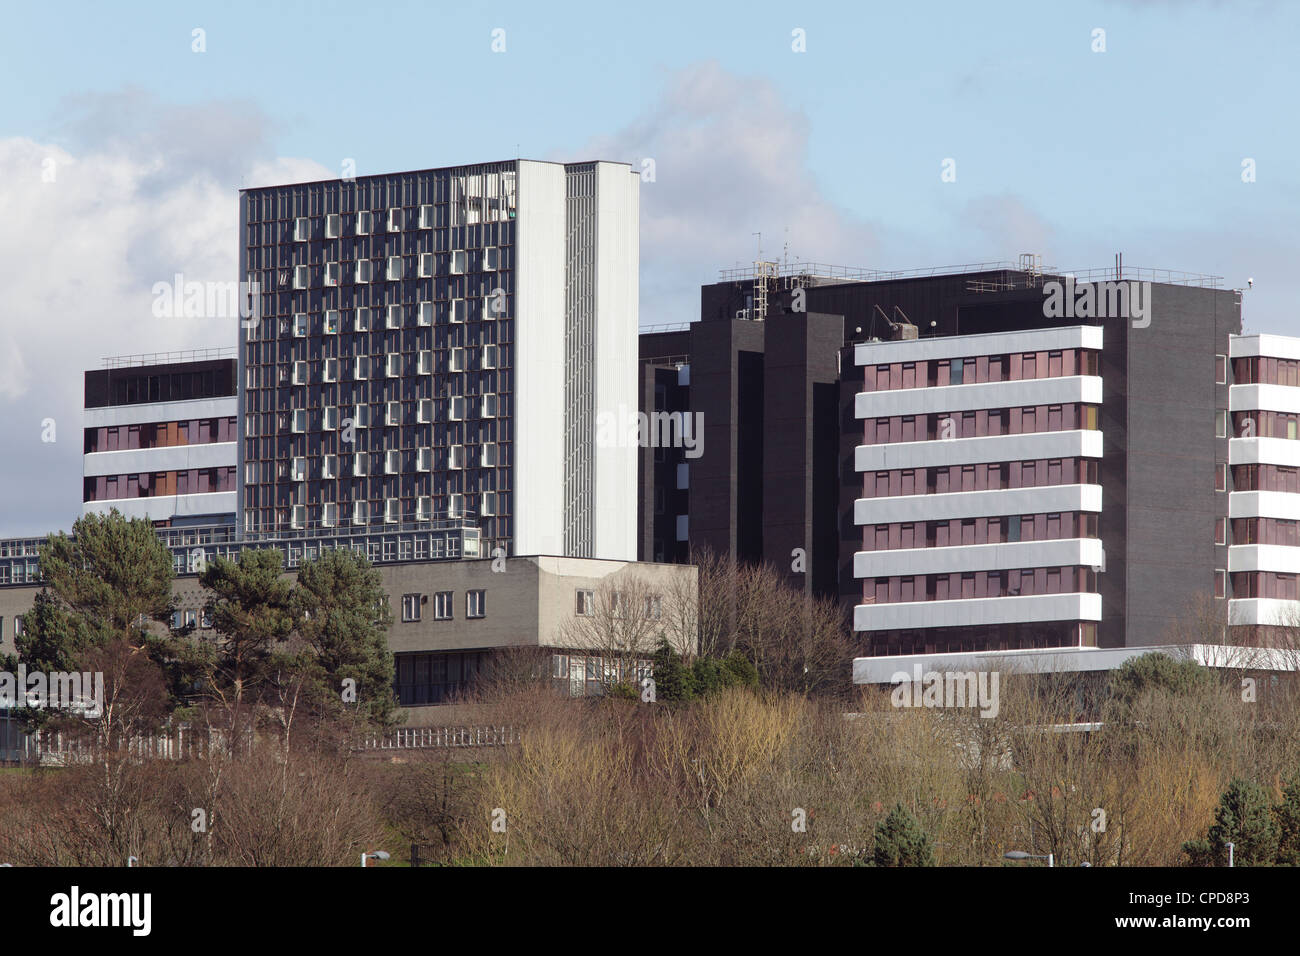 Glasgow Royal Hospital for Sick Children in Yorkhill, Glasgow, Schottland, Großbritannien Stockbild